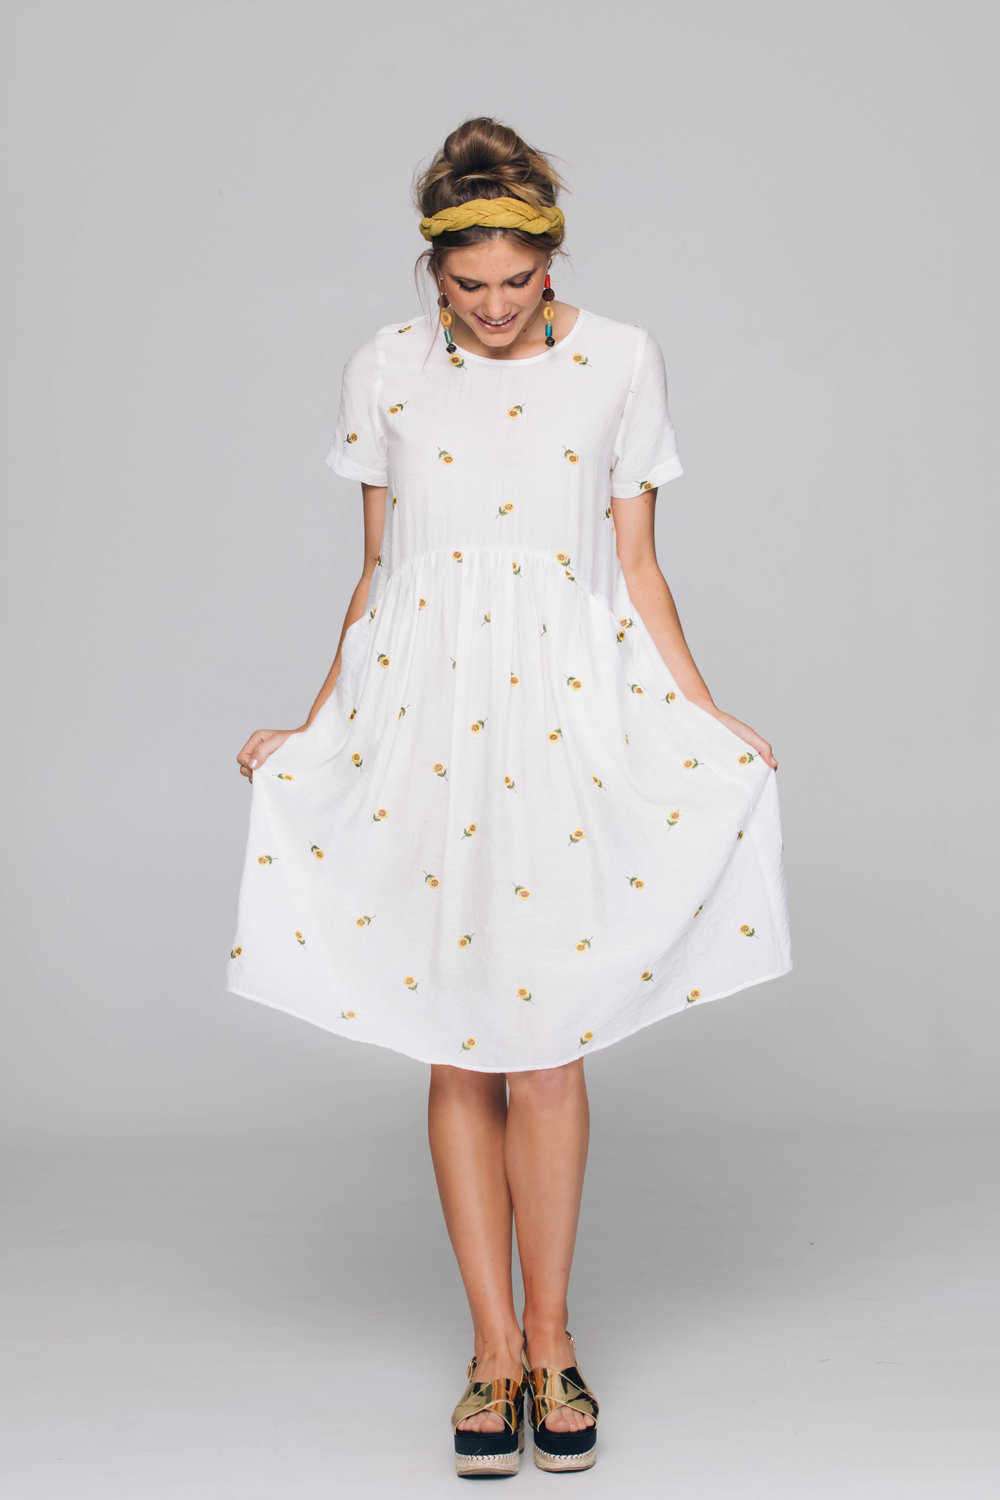 6177T Venice Dress, Suzi Sunflower Ivory